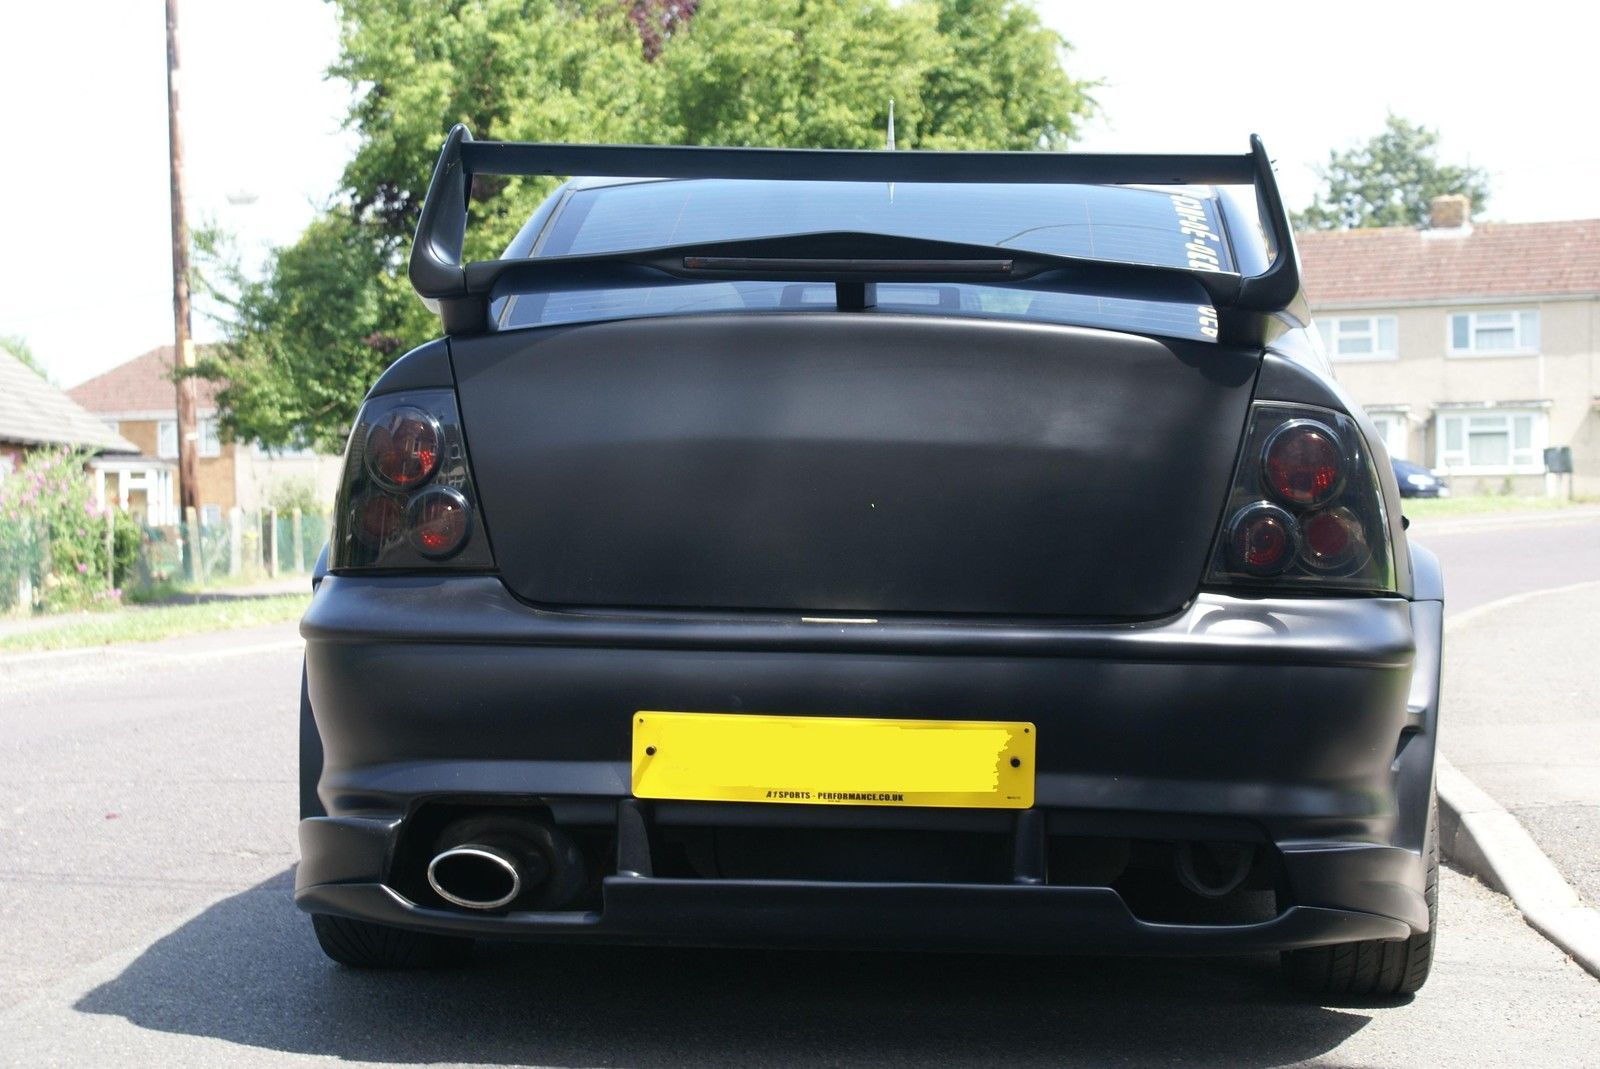 Vauxhall Vectra B Preface Flushed bootlid from saloon GSI | eBay ...